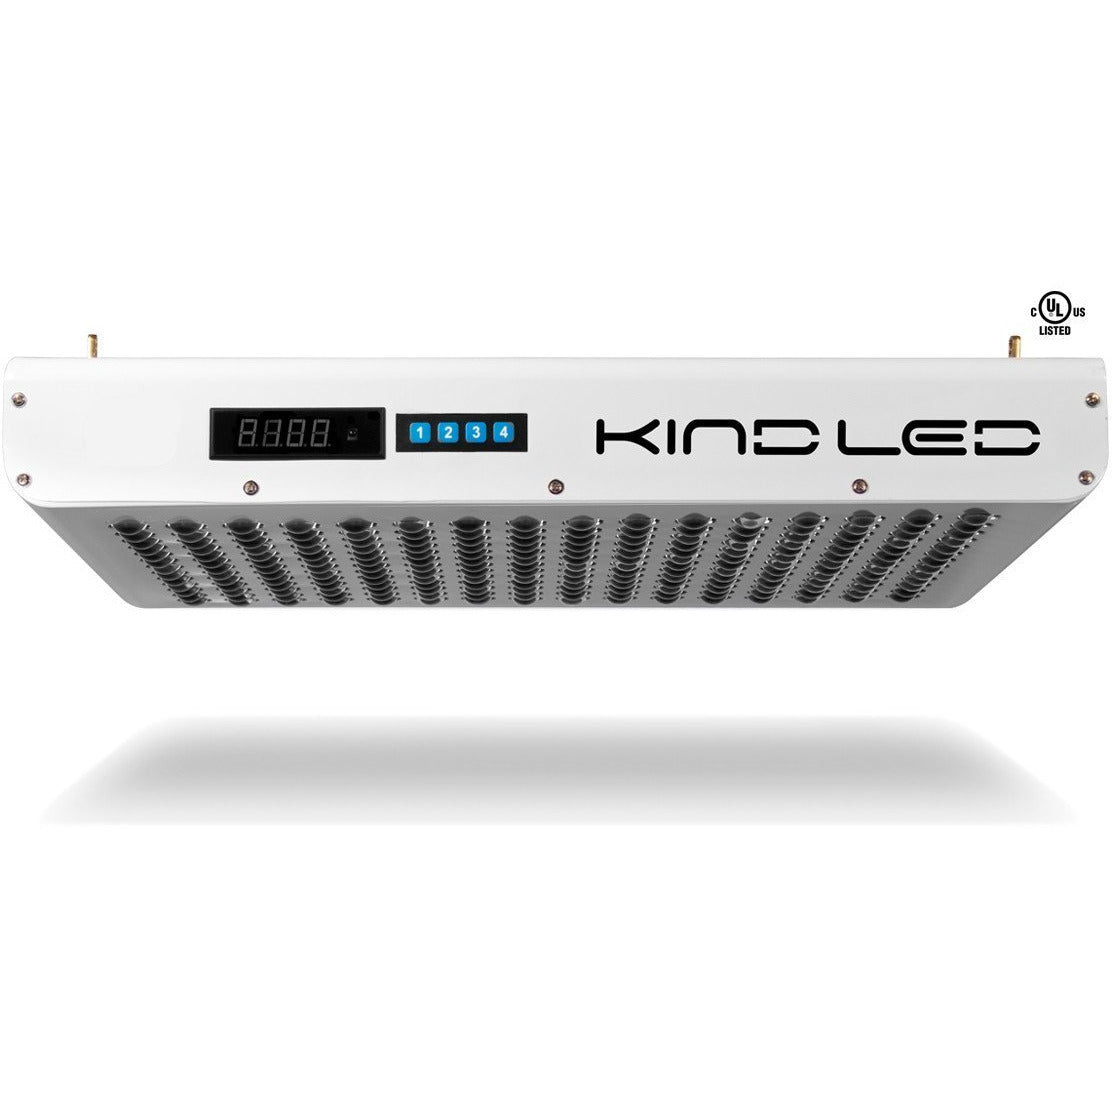 K5 Series XL750 LED Grow Light - Hydroponics Greenhouse